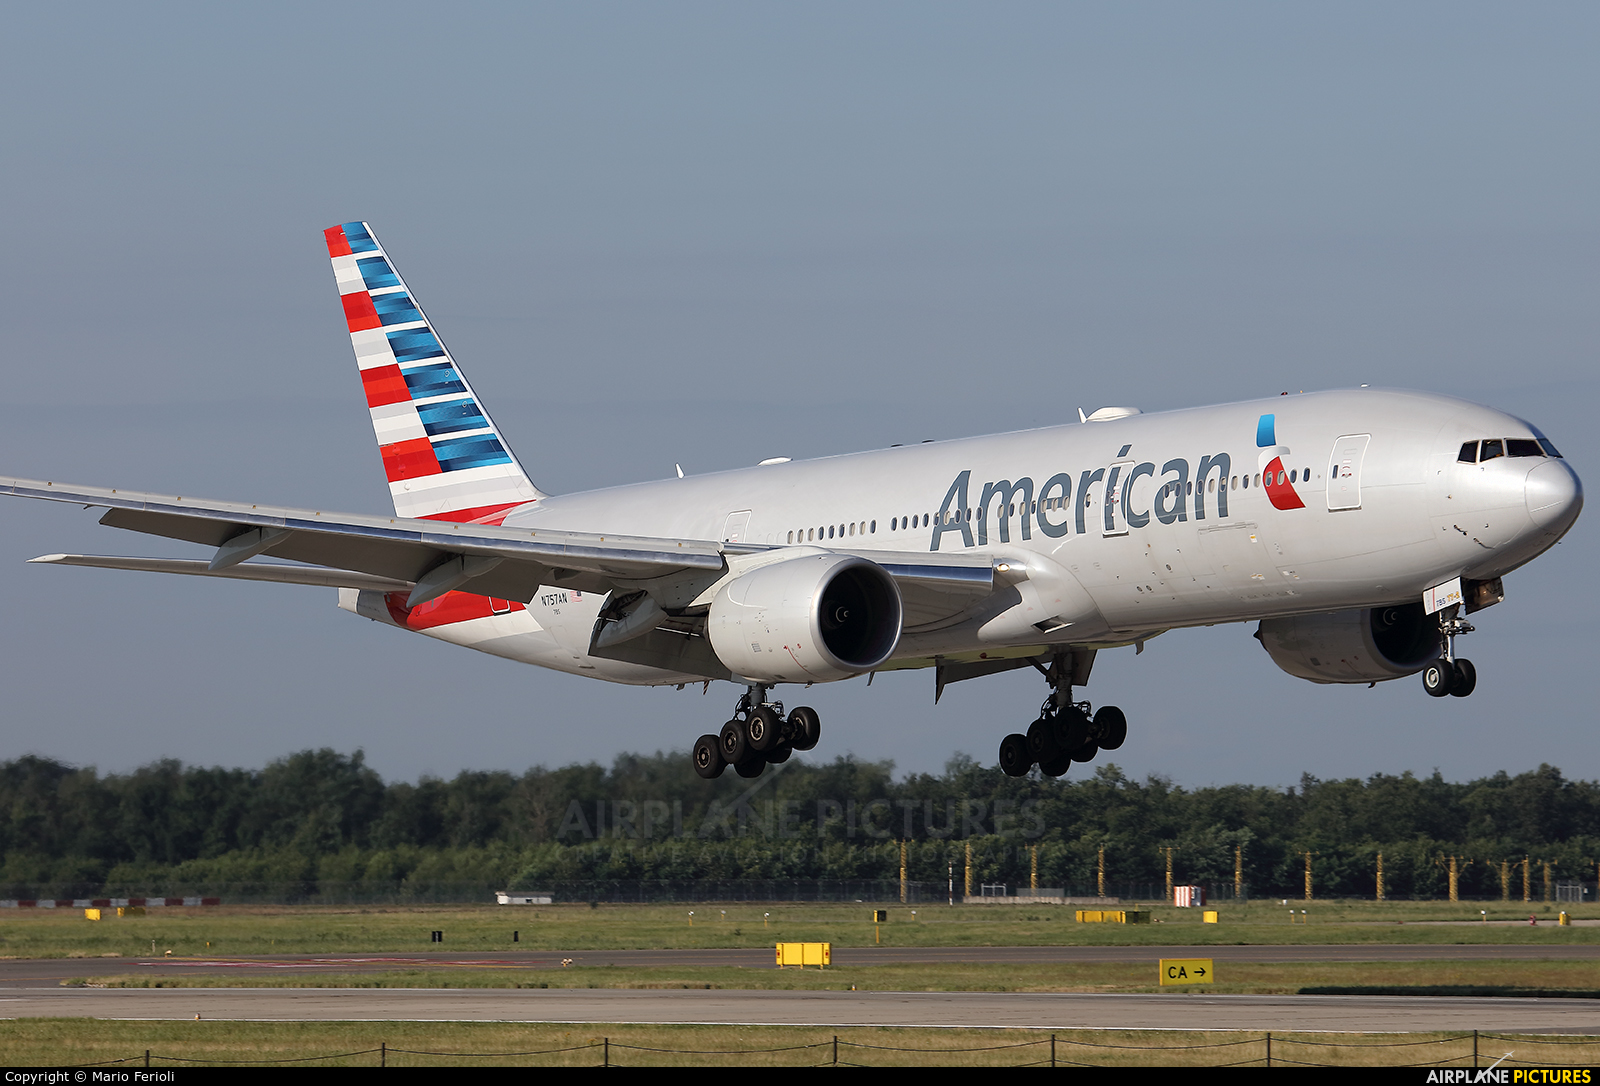 American Airlines N757AN aircraft at Milan - Malpensa